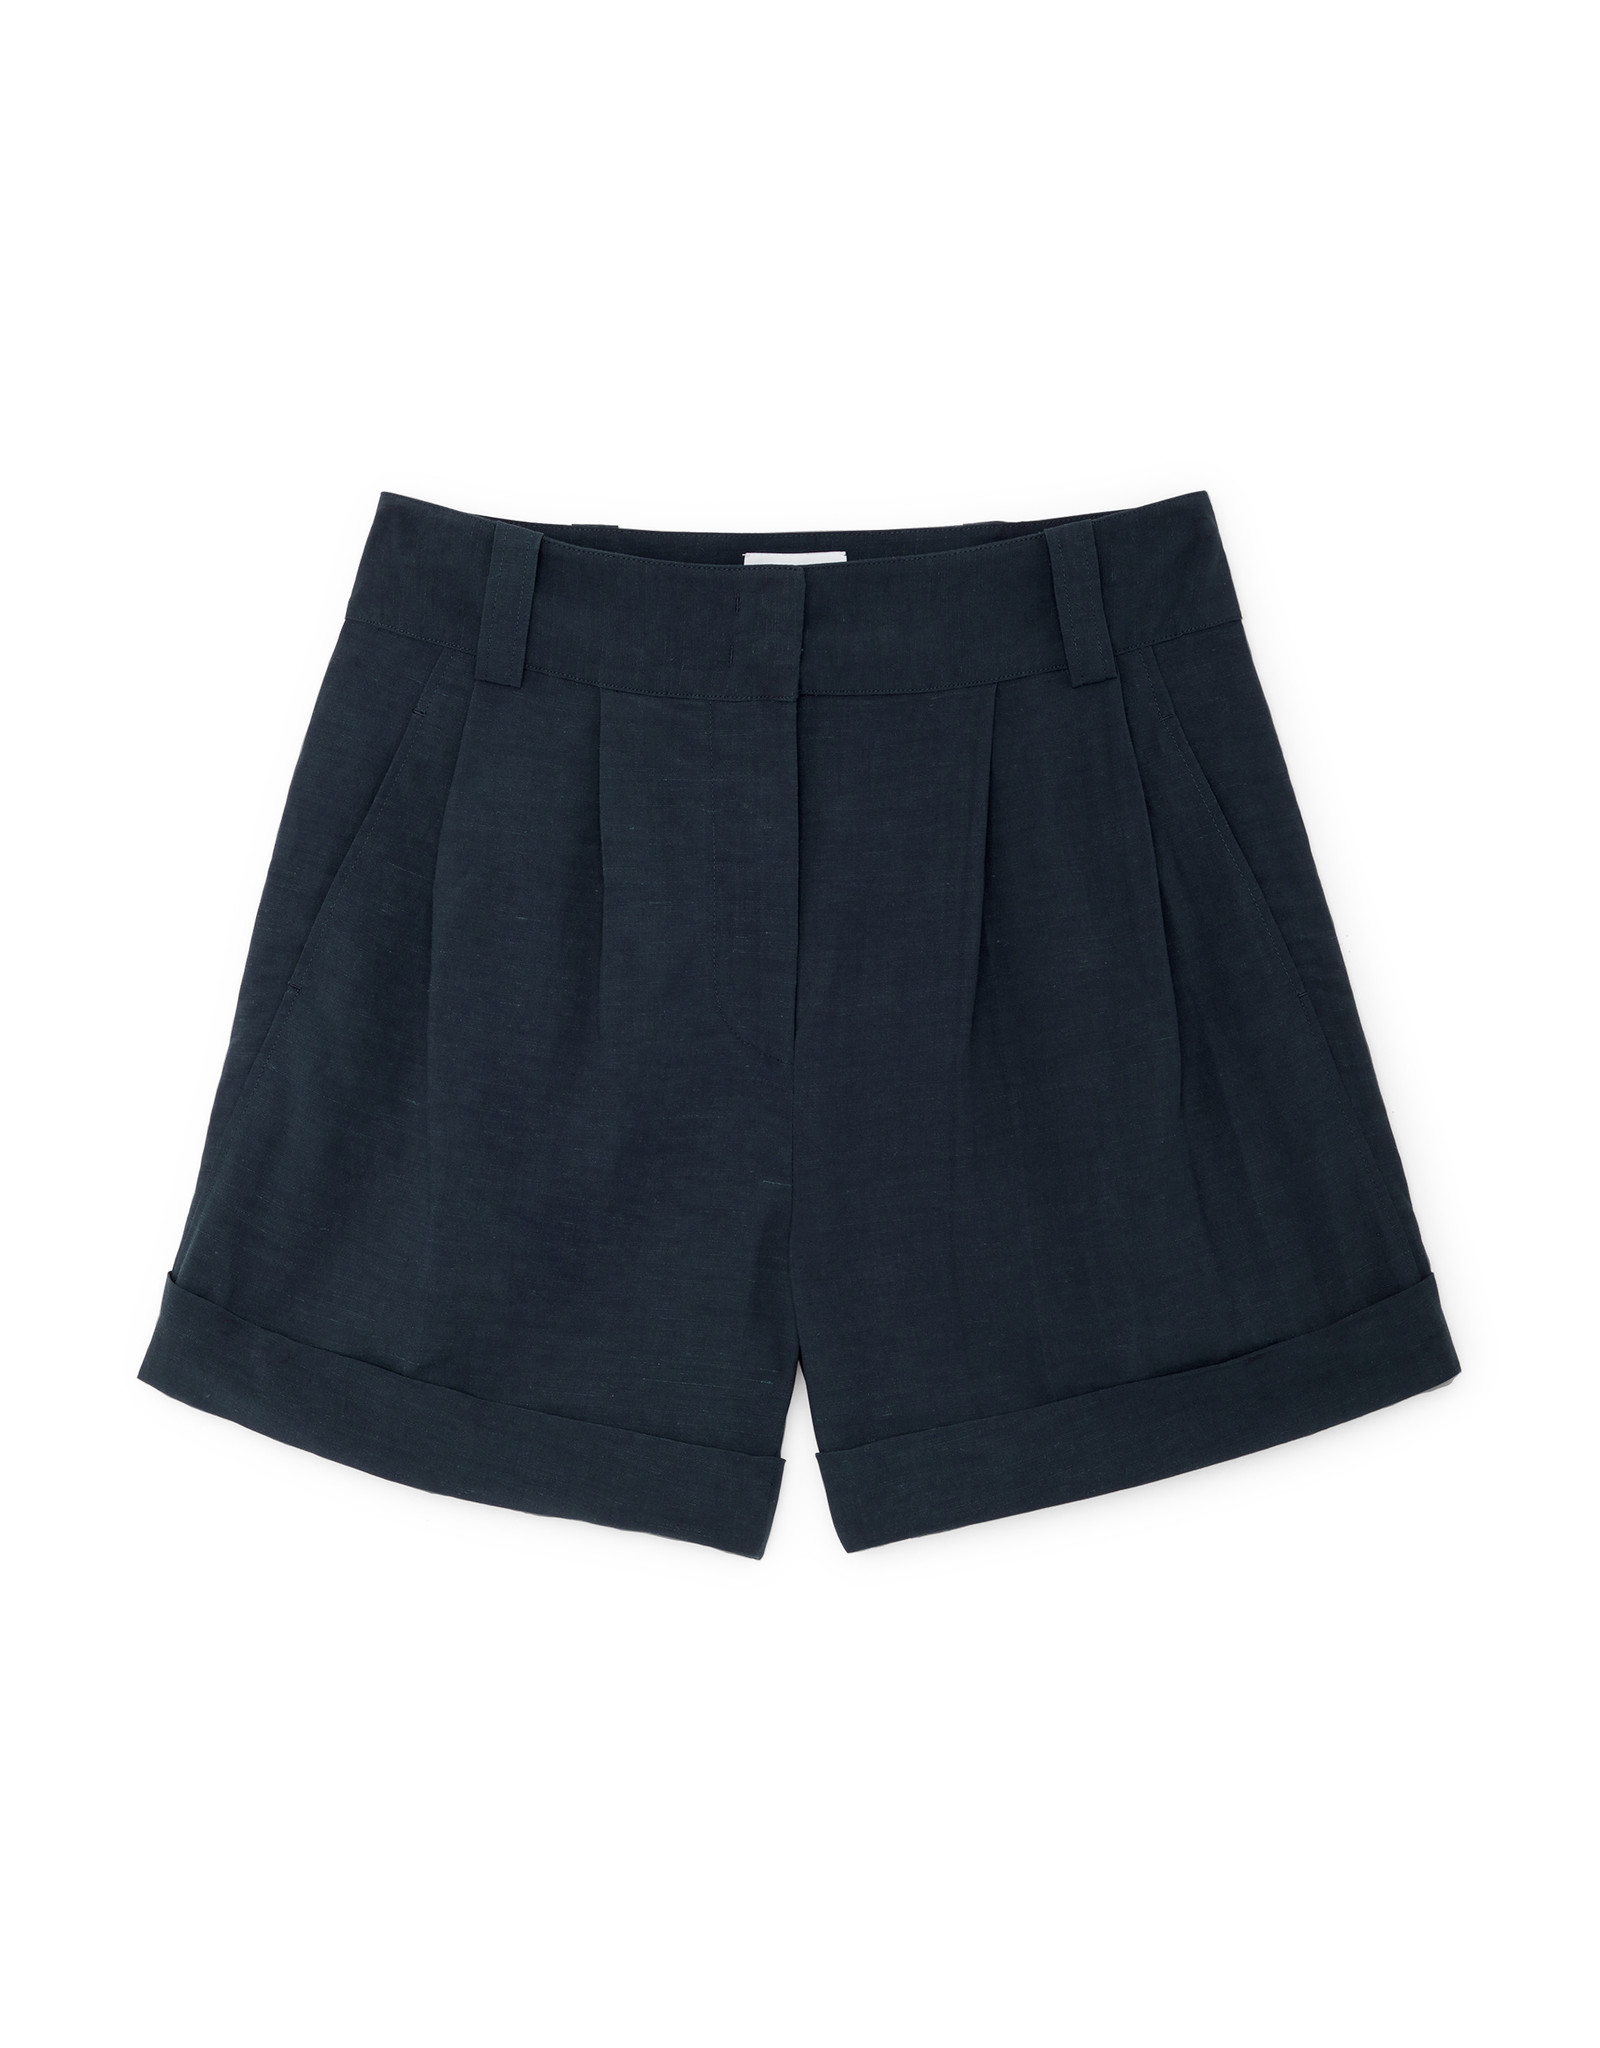 G. Label G. Label Marty High Waist Short (Color: Navy, Size: 2)